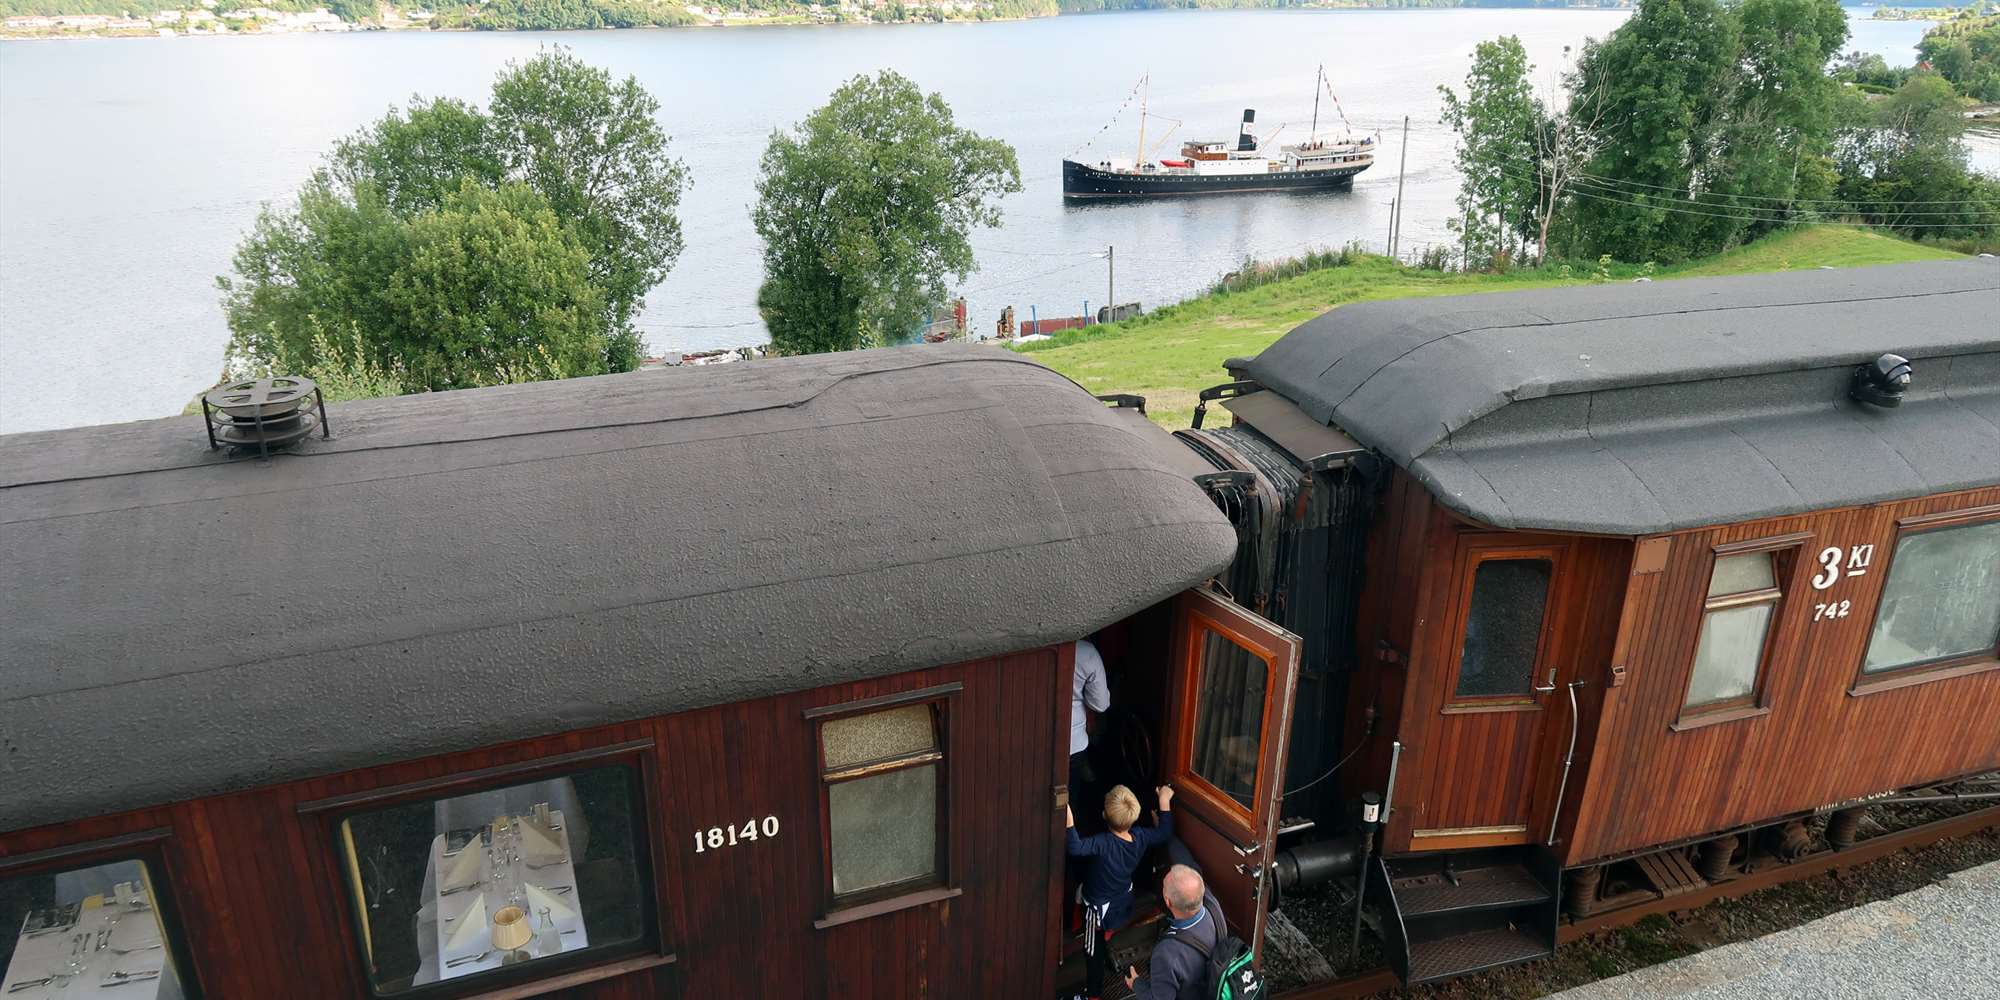 The Old Voss Steam Railway Museum - visitBergen com